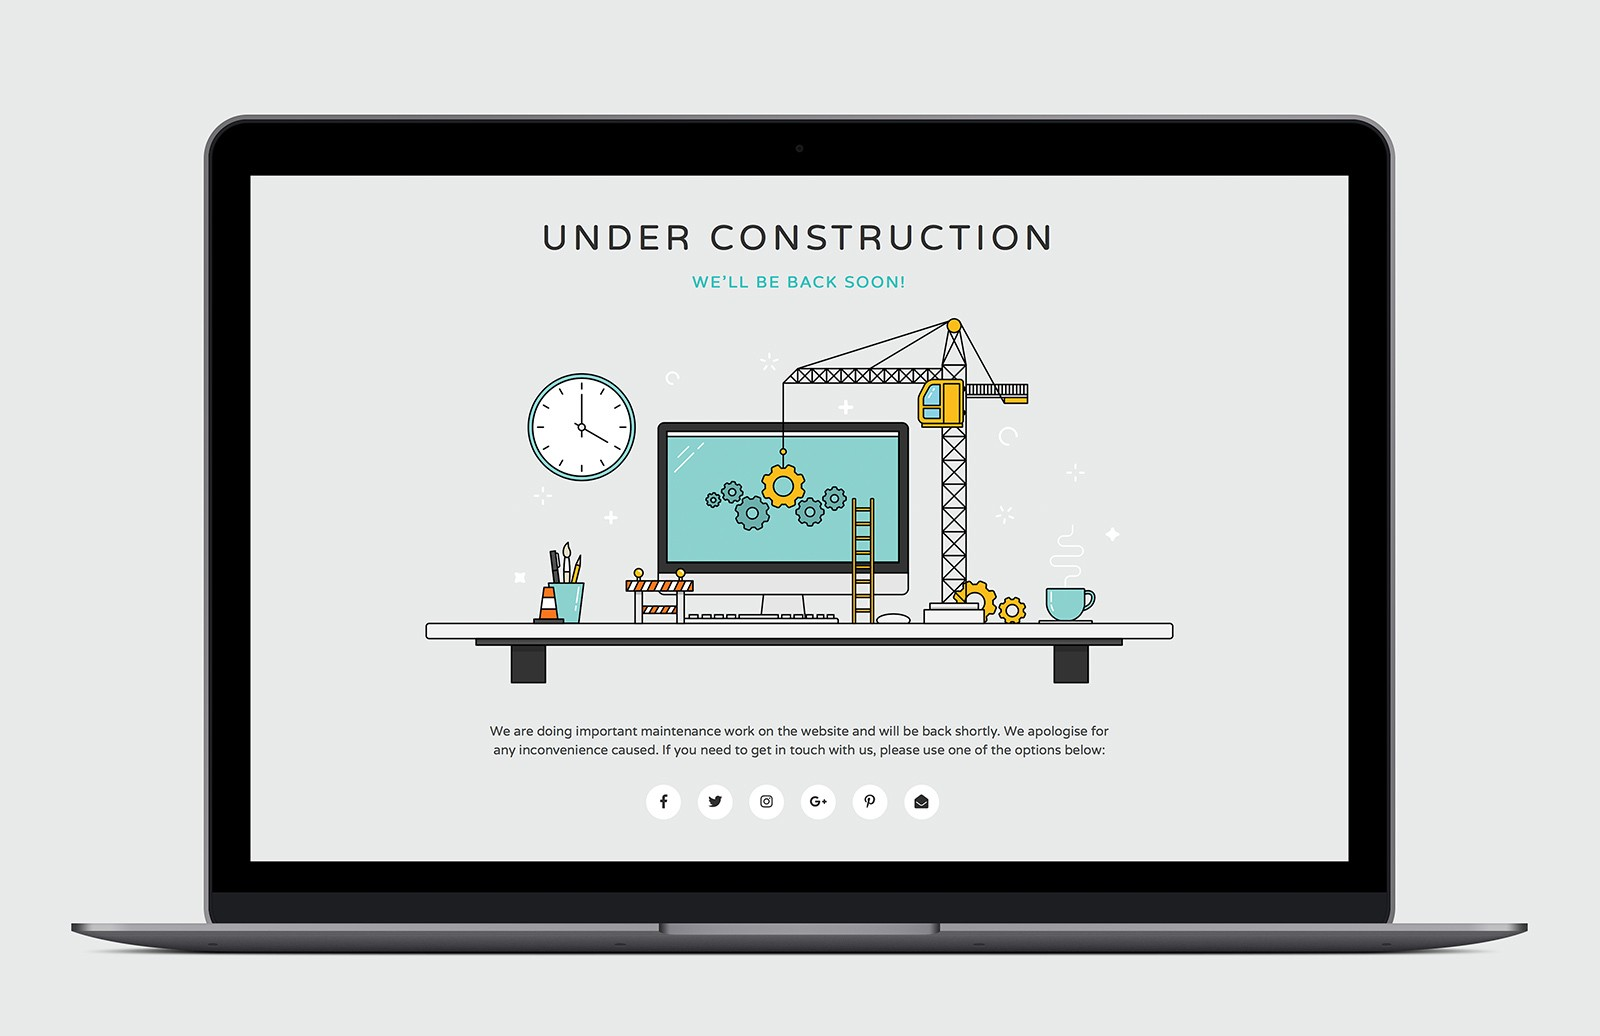 HTML Under Construction Page